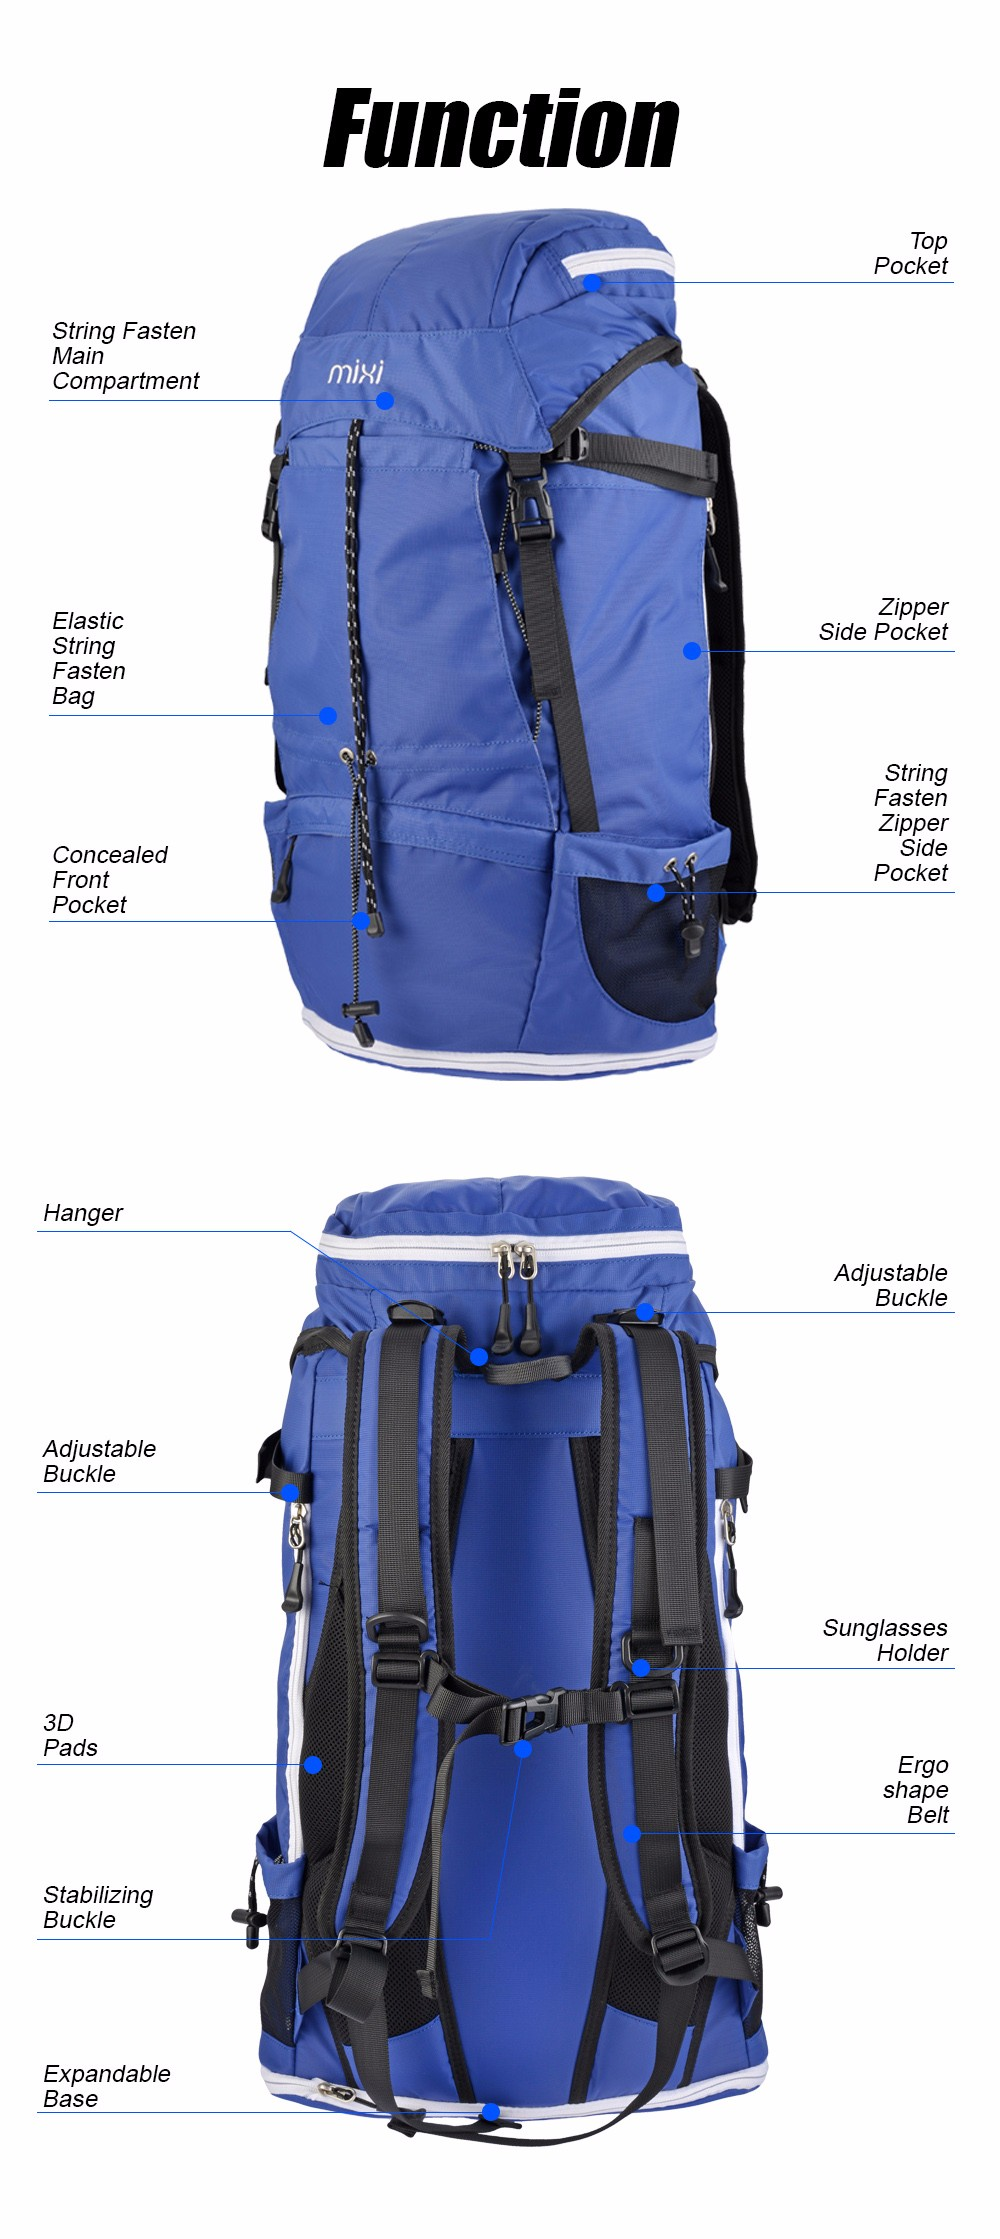 44940619d7a9 US $53.81 |Mixi Large 43L Outdoor Backpack Unisex Travel Multi purpose  Climbing Backpacks Hiking Big Capacity Rucksacks Camping Sports Bags-in ...